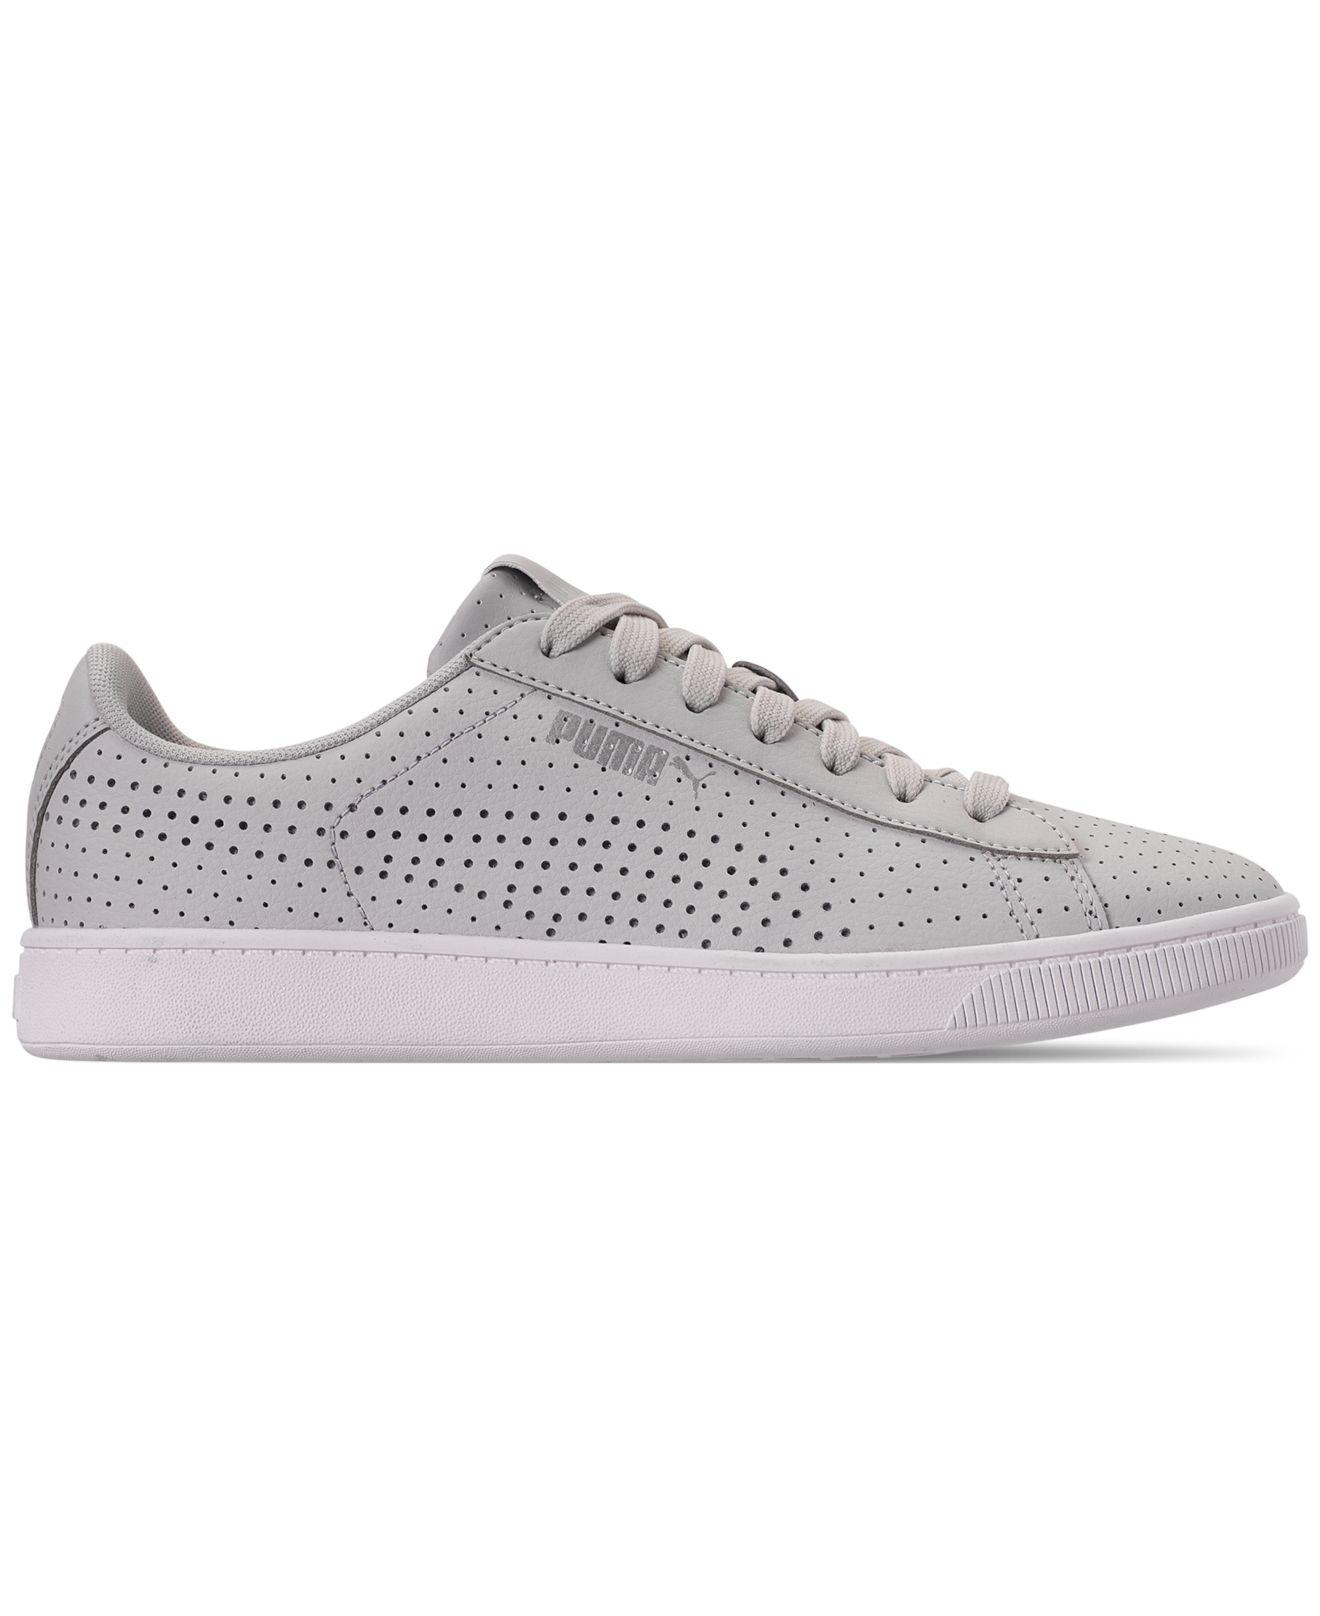 Lyst - PUMA Vikky Perf V2 Casual Sneakers From Finish Line in Gray b07140de5